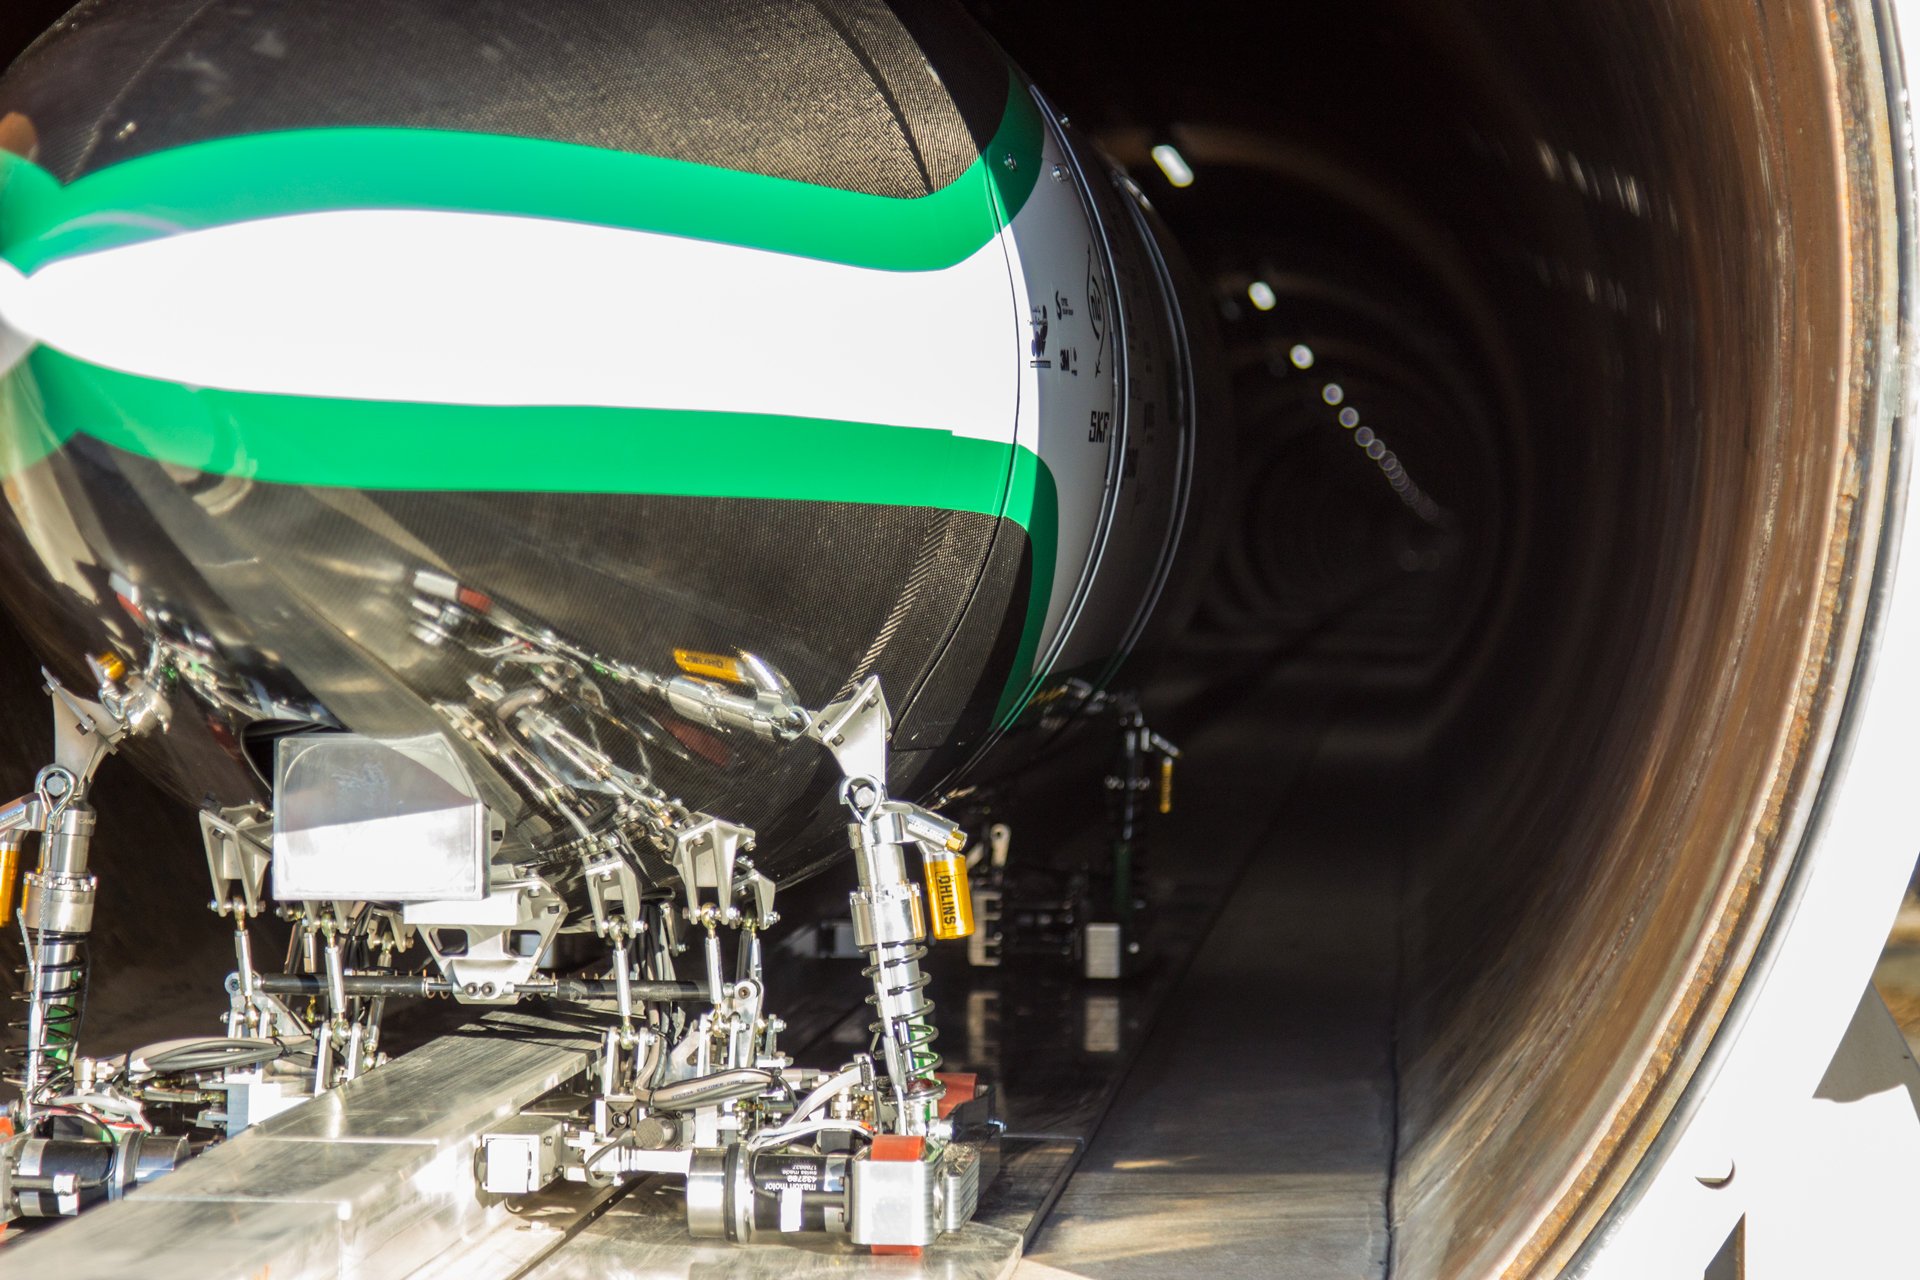 Delft Hyperloop Pod in SpaceX Hyperloop Pod Competition Test Tube